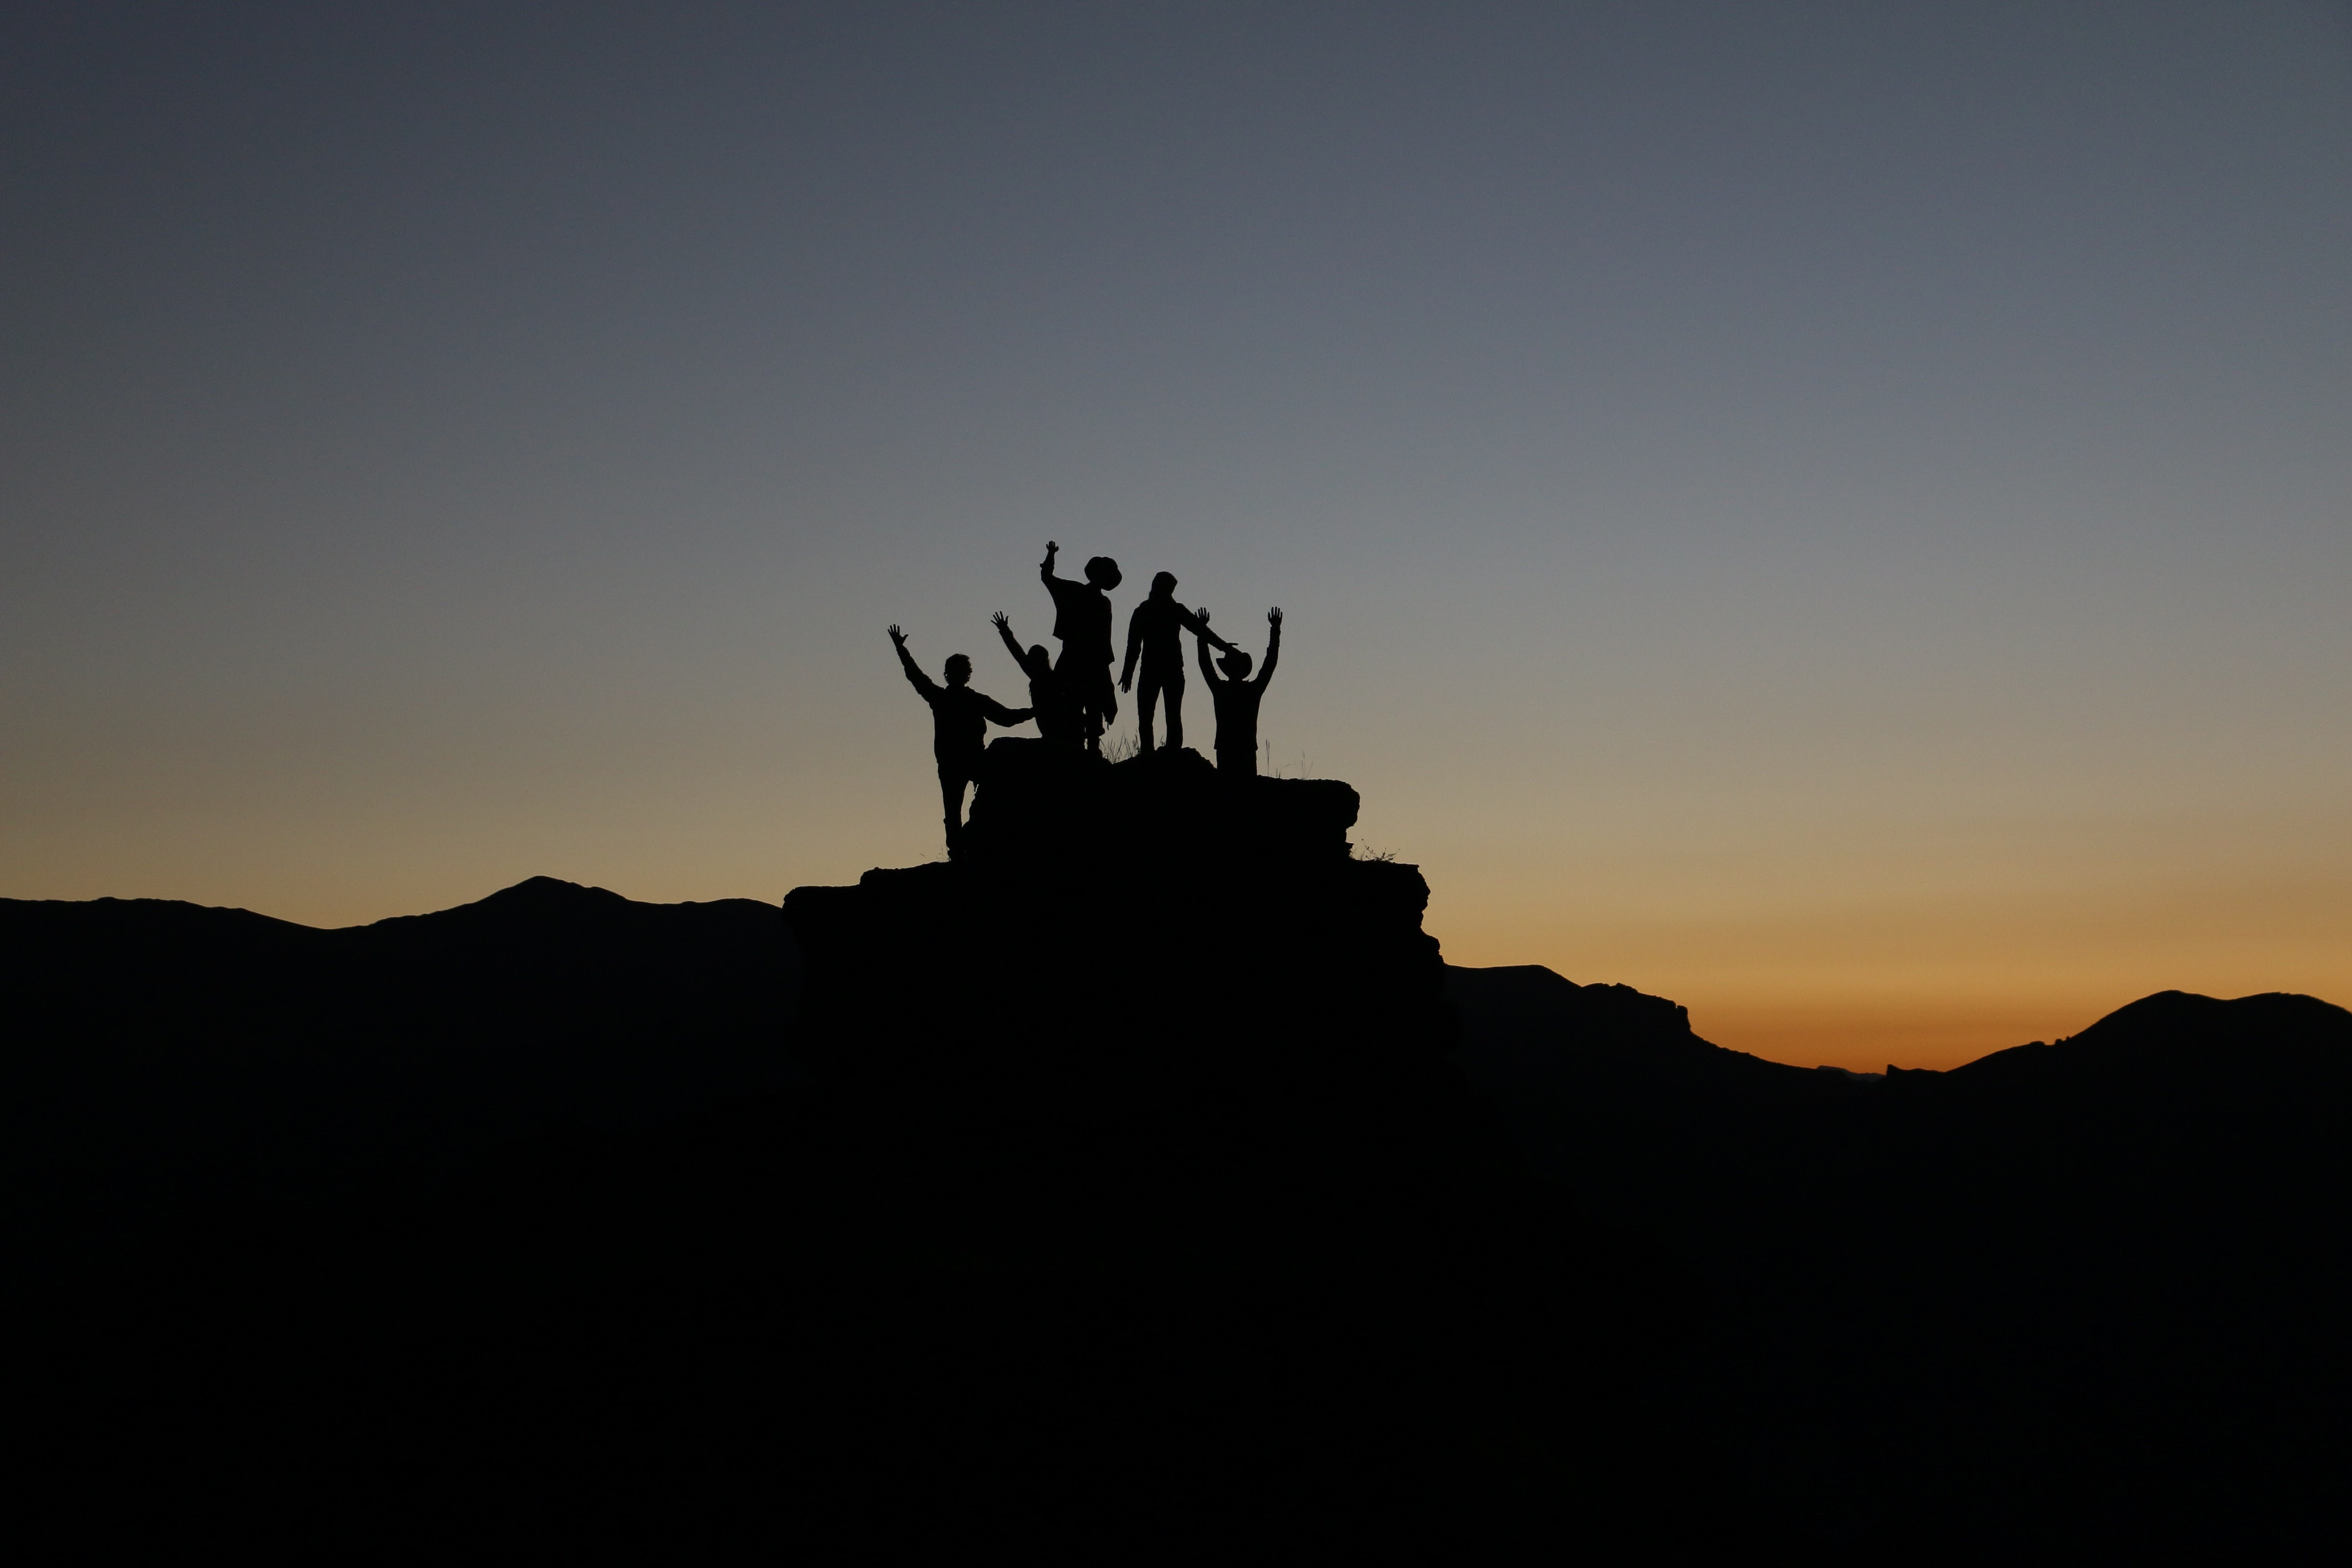 Silhouette of people posing on top of a rocky landscape